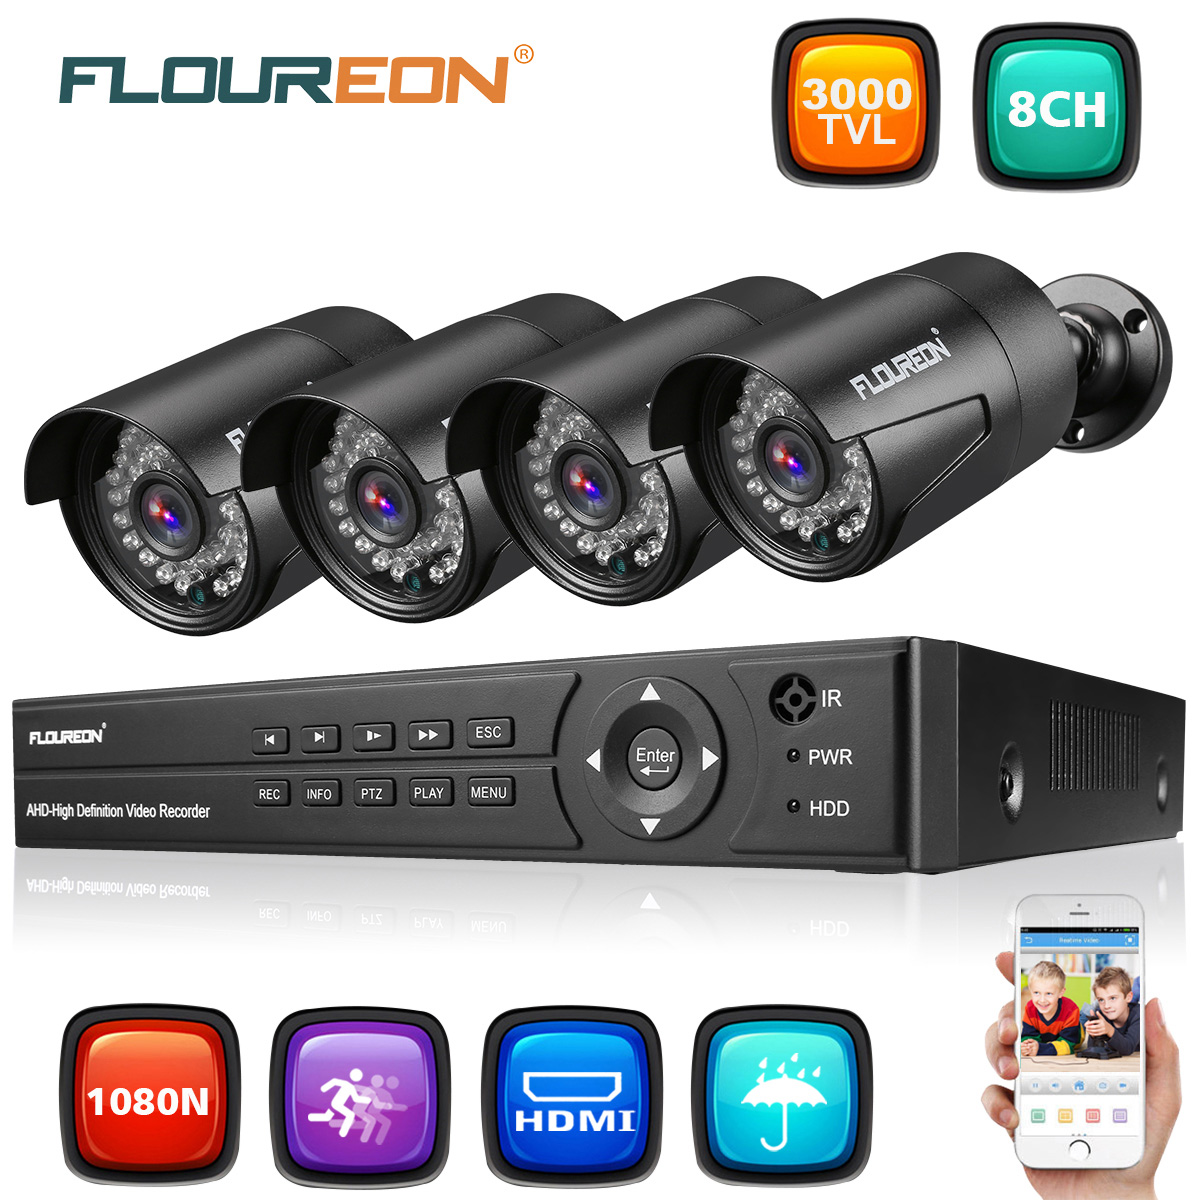 Floureon 8 CH House Camera System DVR 1080N AHD + 4 Outdoor/Indoor Bullet Home Security Cameras 3000TVL 1080P 2.0MP Resolution Night Version for